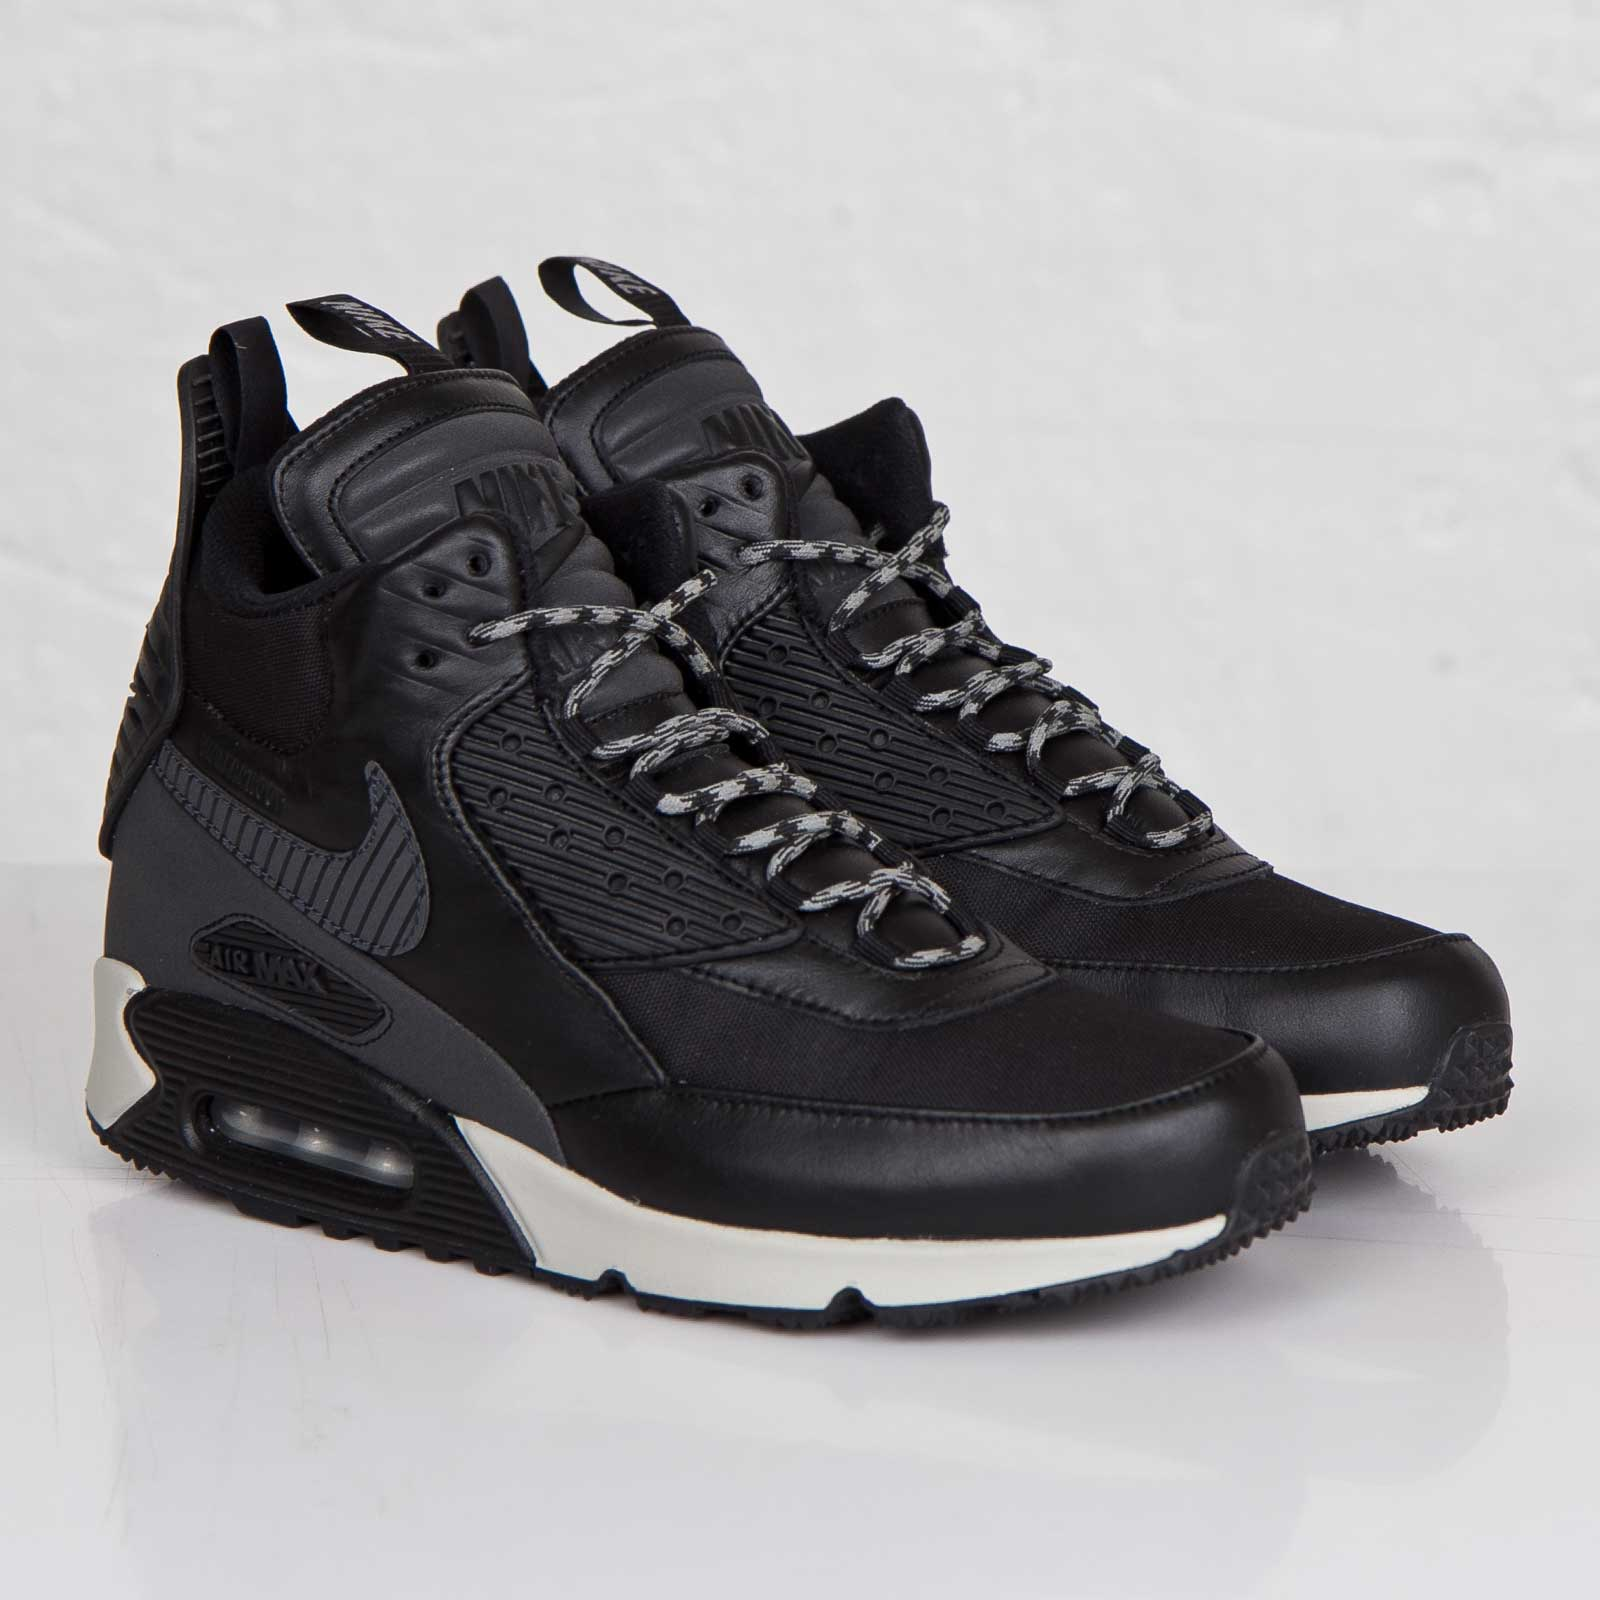 factory authentic fee40 24a29 Nike Air Max 90 Sneakerboot Winter